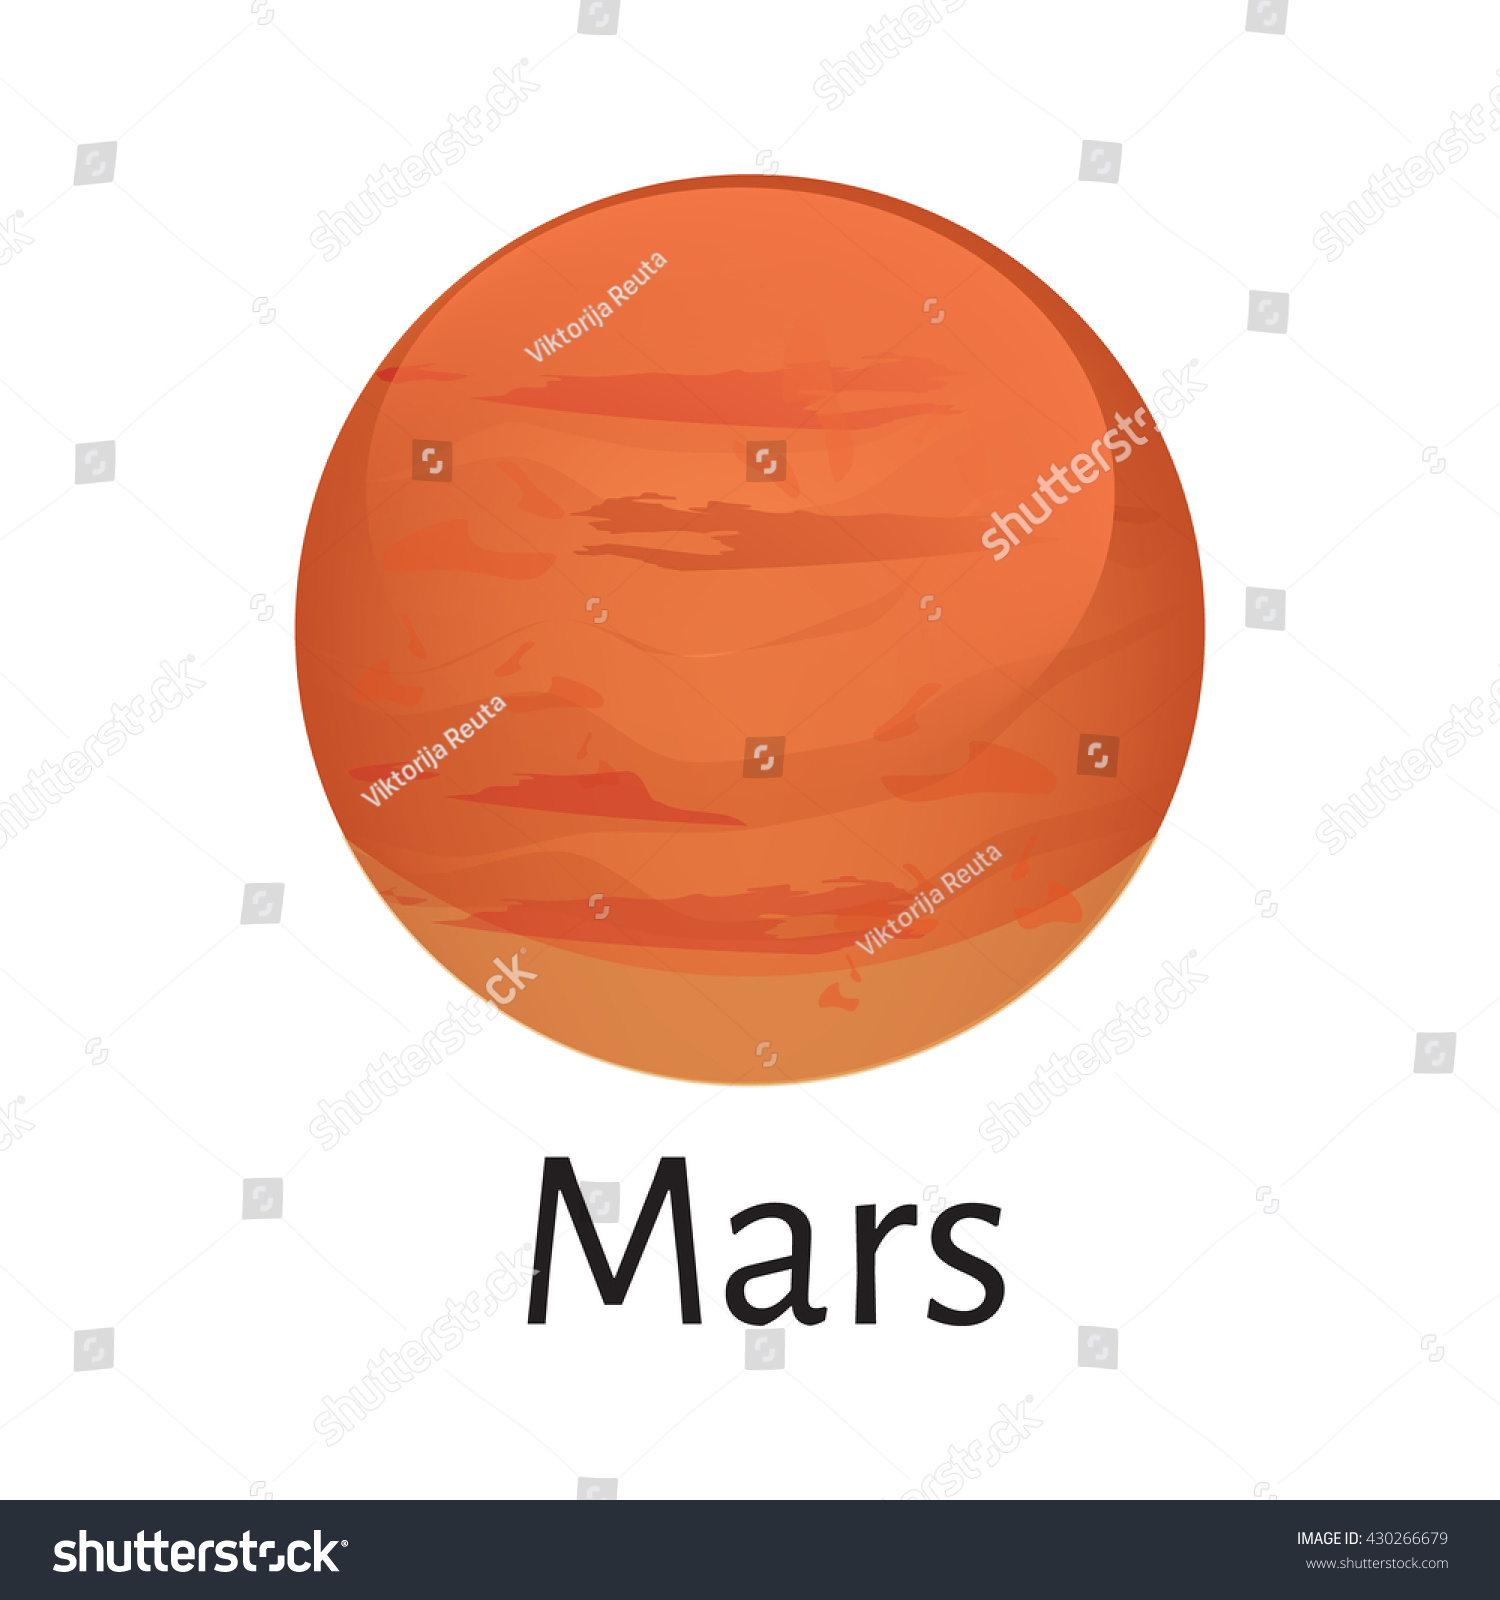 mars solar system song - photo #44